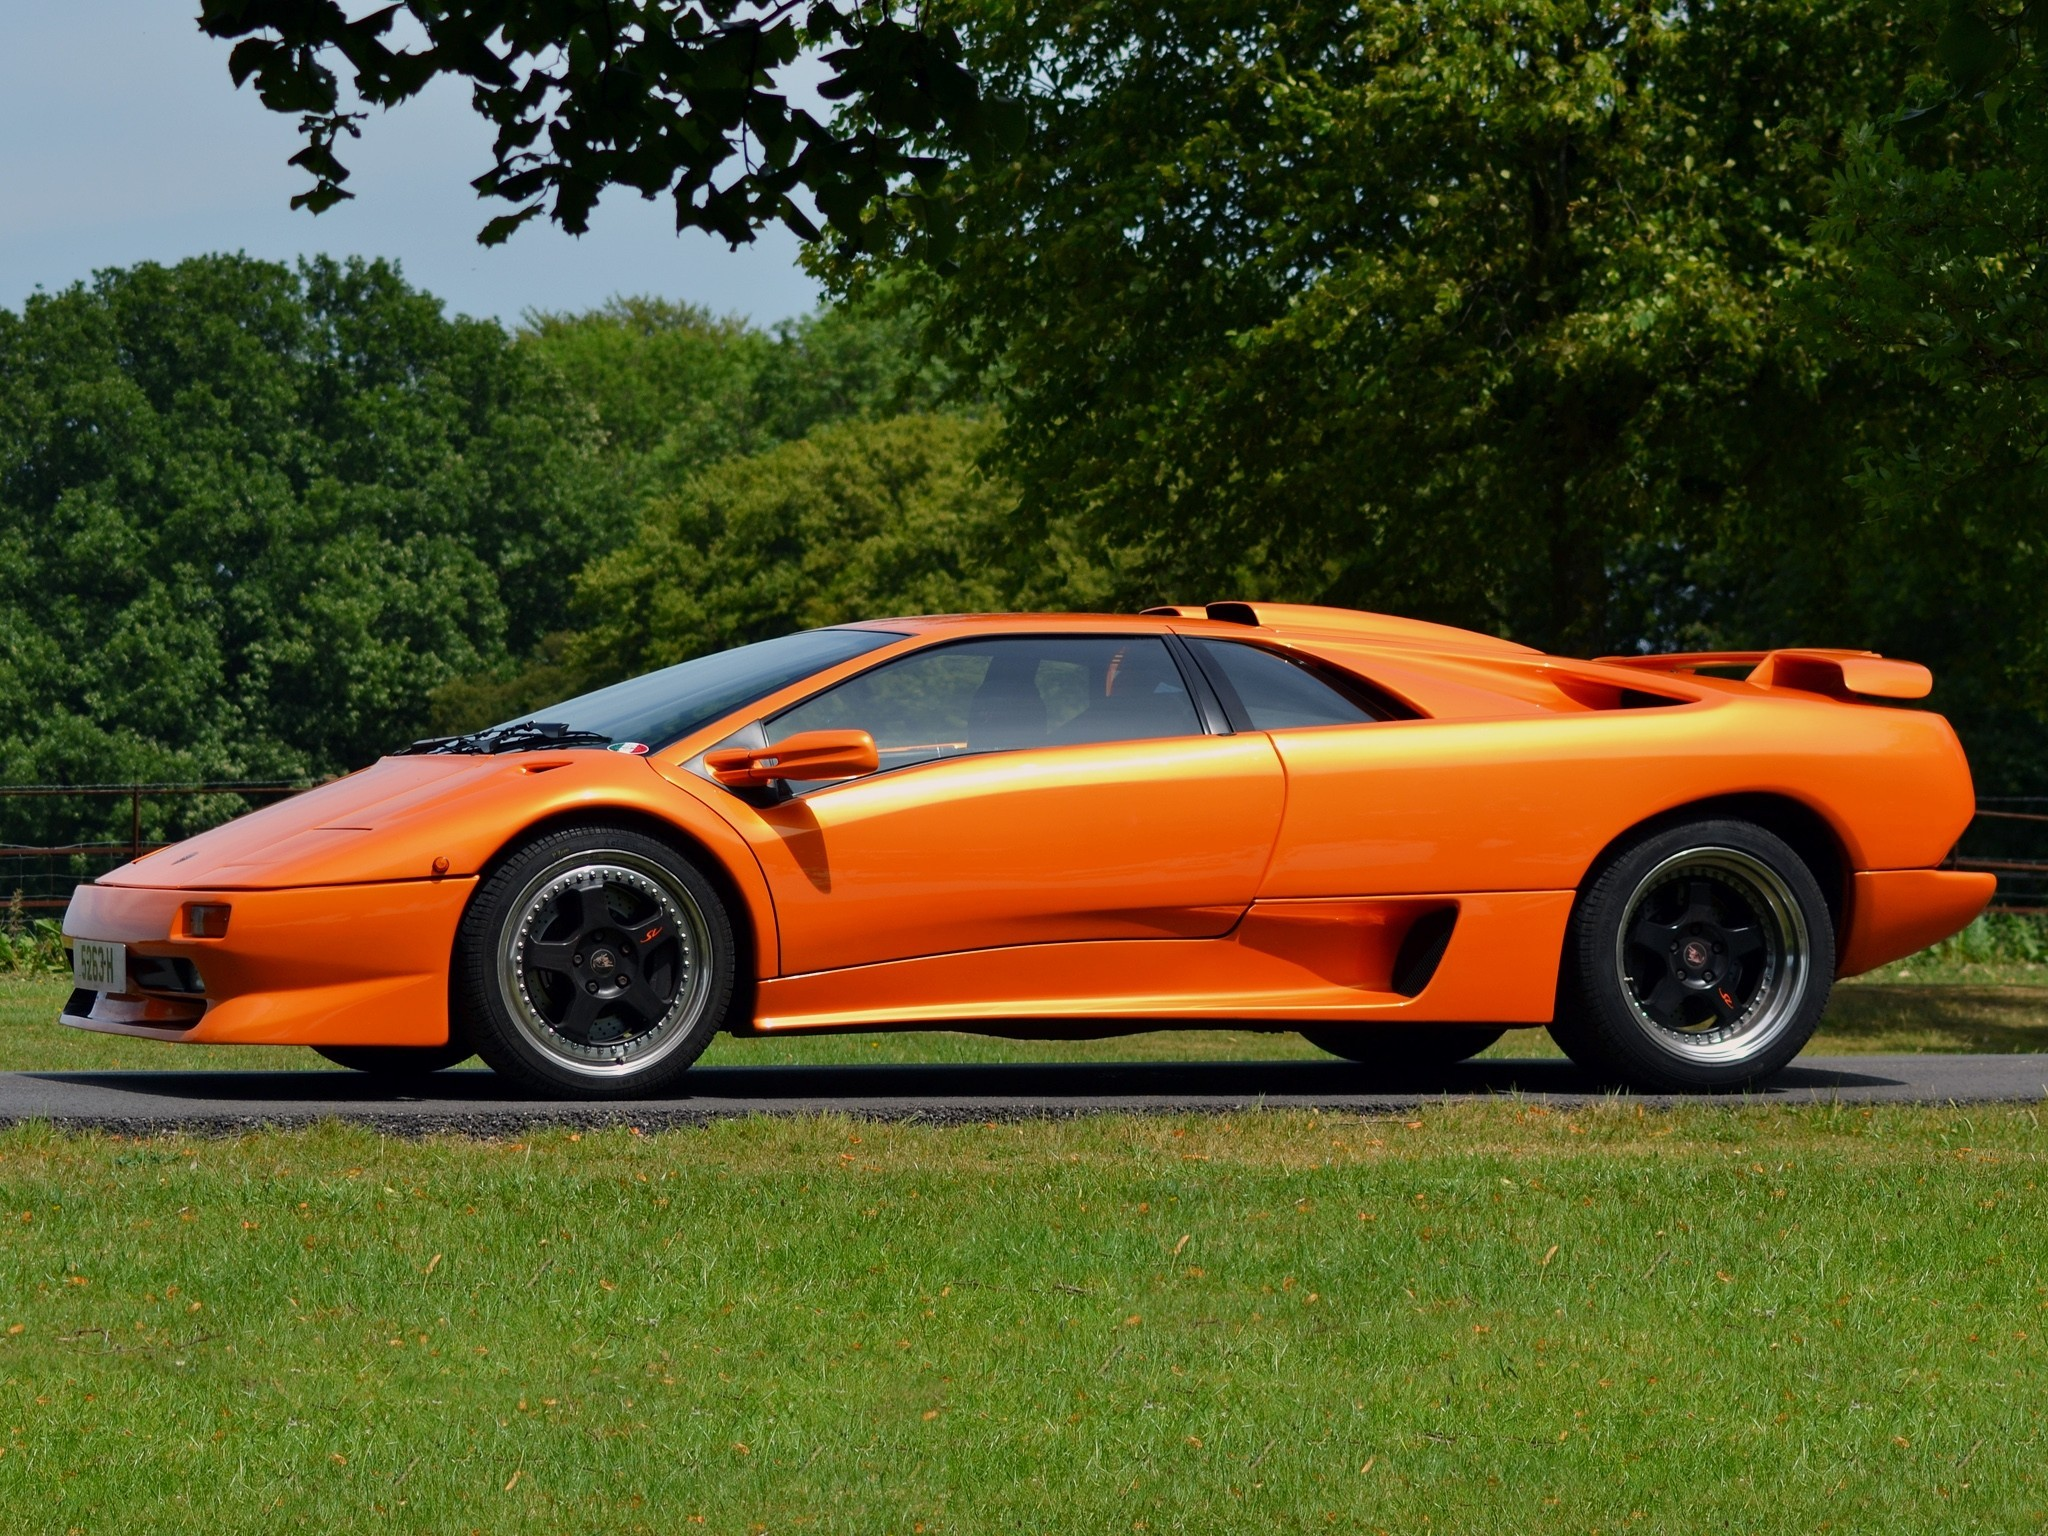 Lamborghini Diablo Sv Cars Wallpaper Allwallpaper In 12263 Pc En